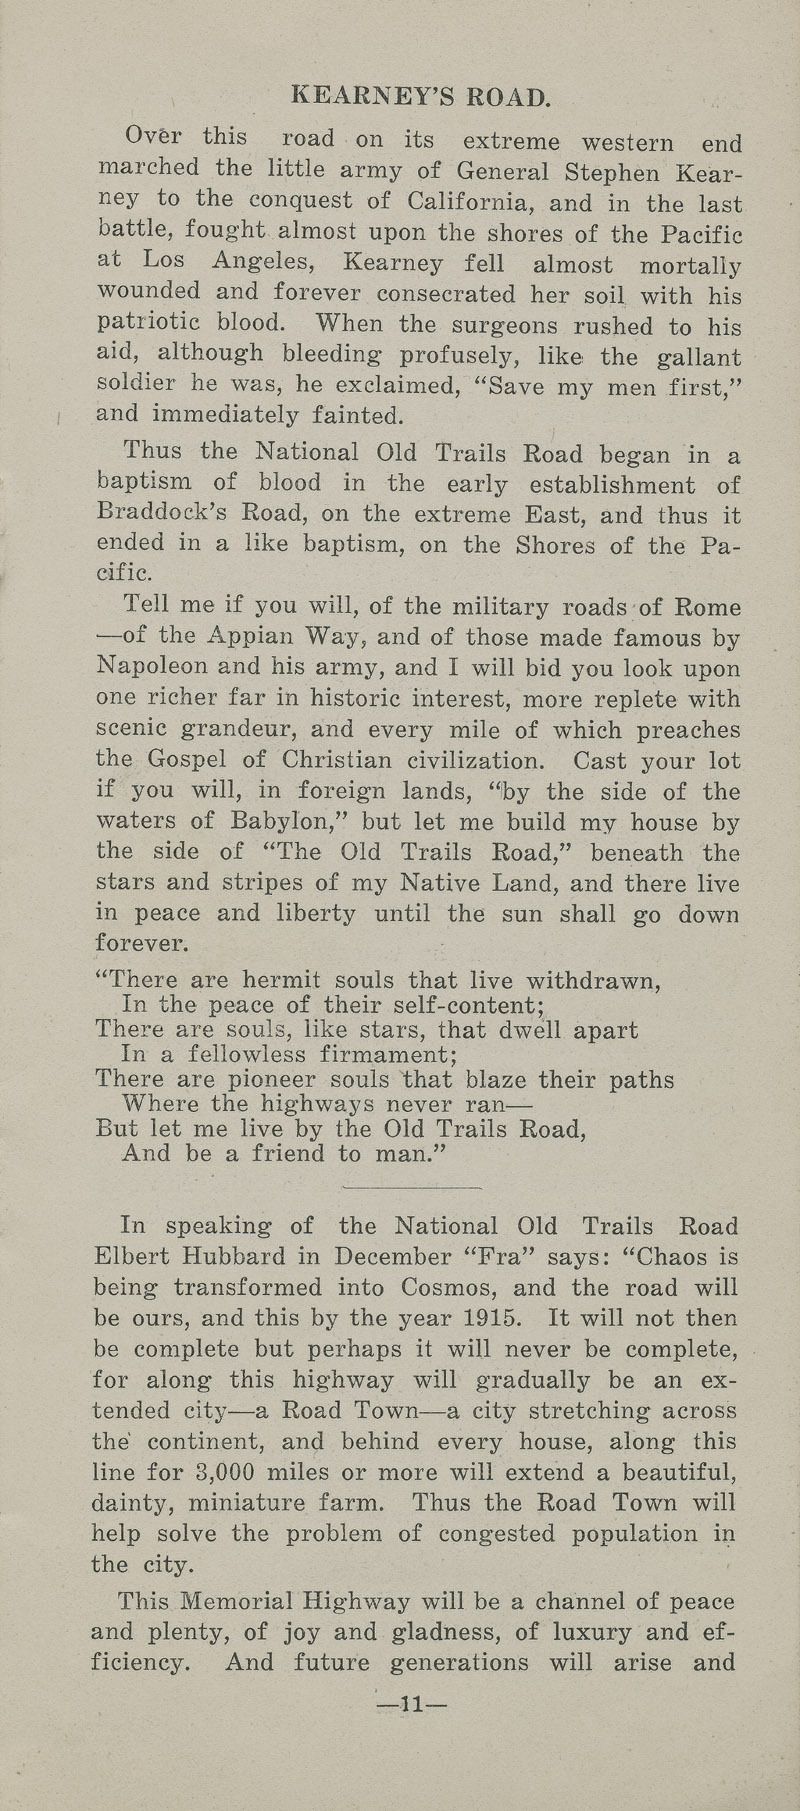 National Old Trails Road project : arguments for its construction and maintenance by the United States government - pg. 11